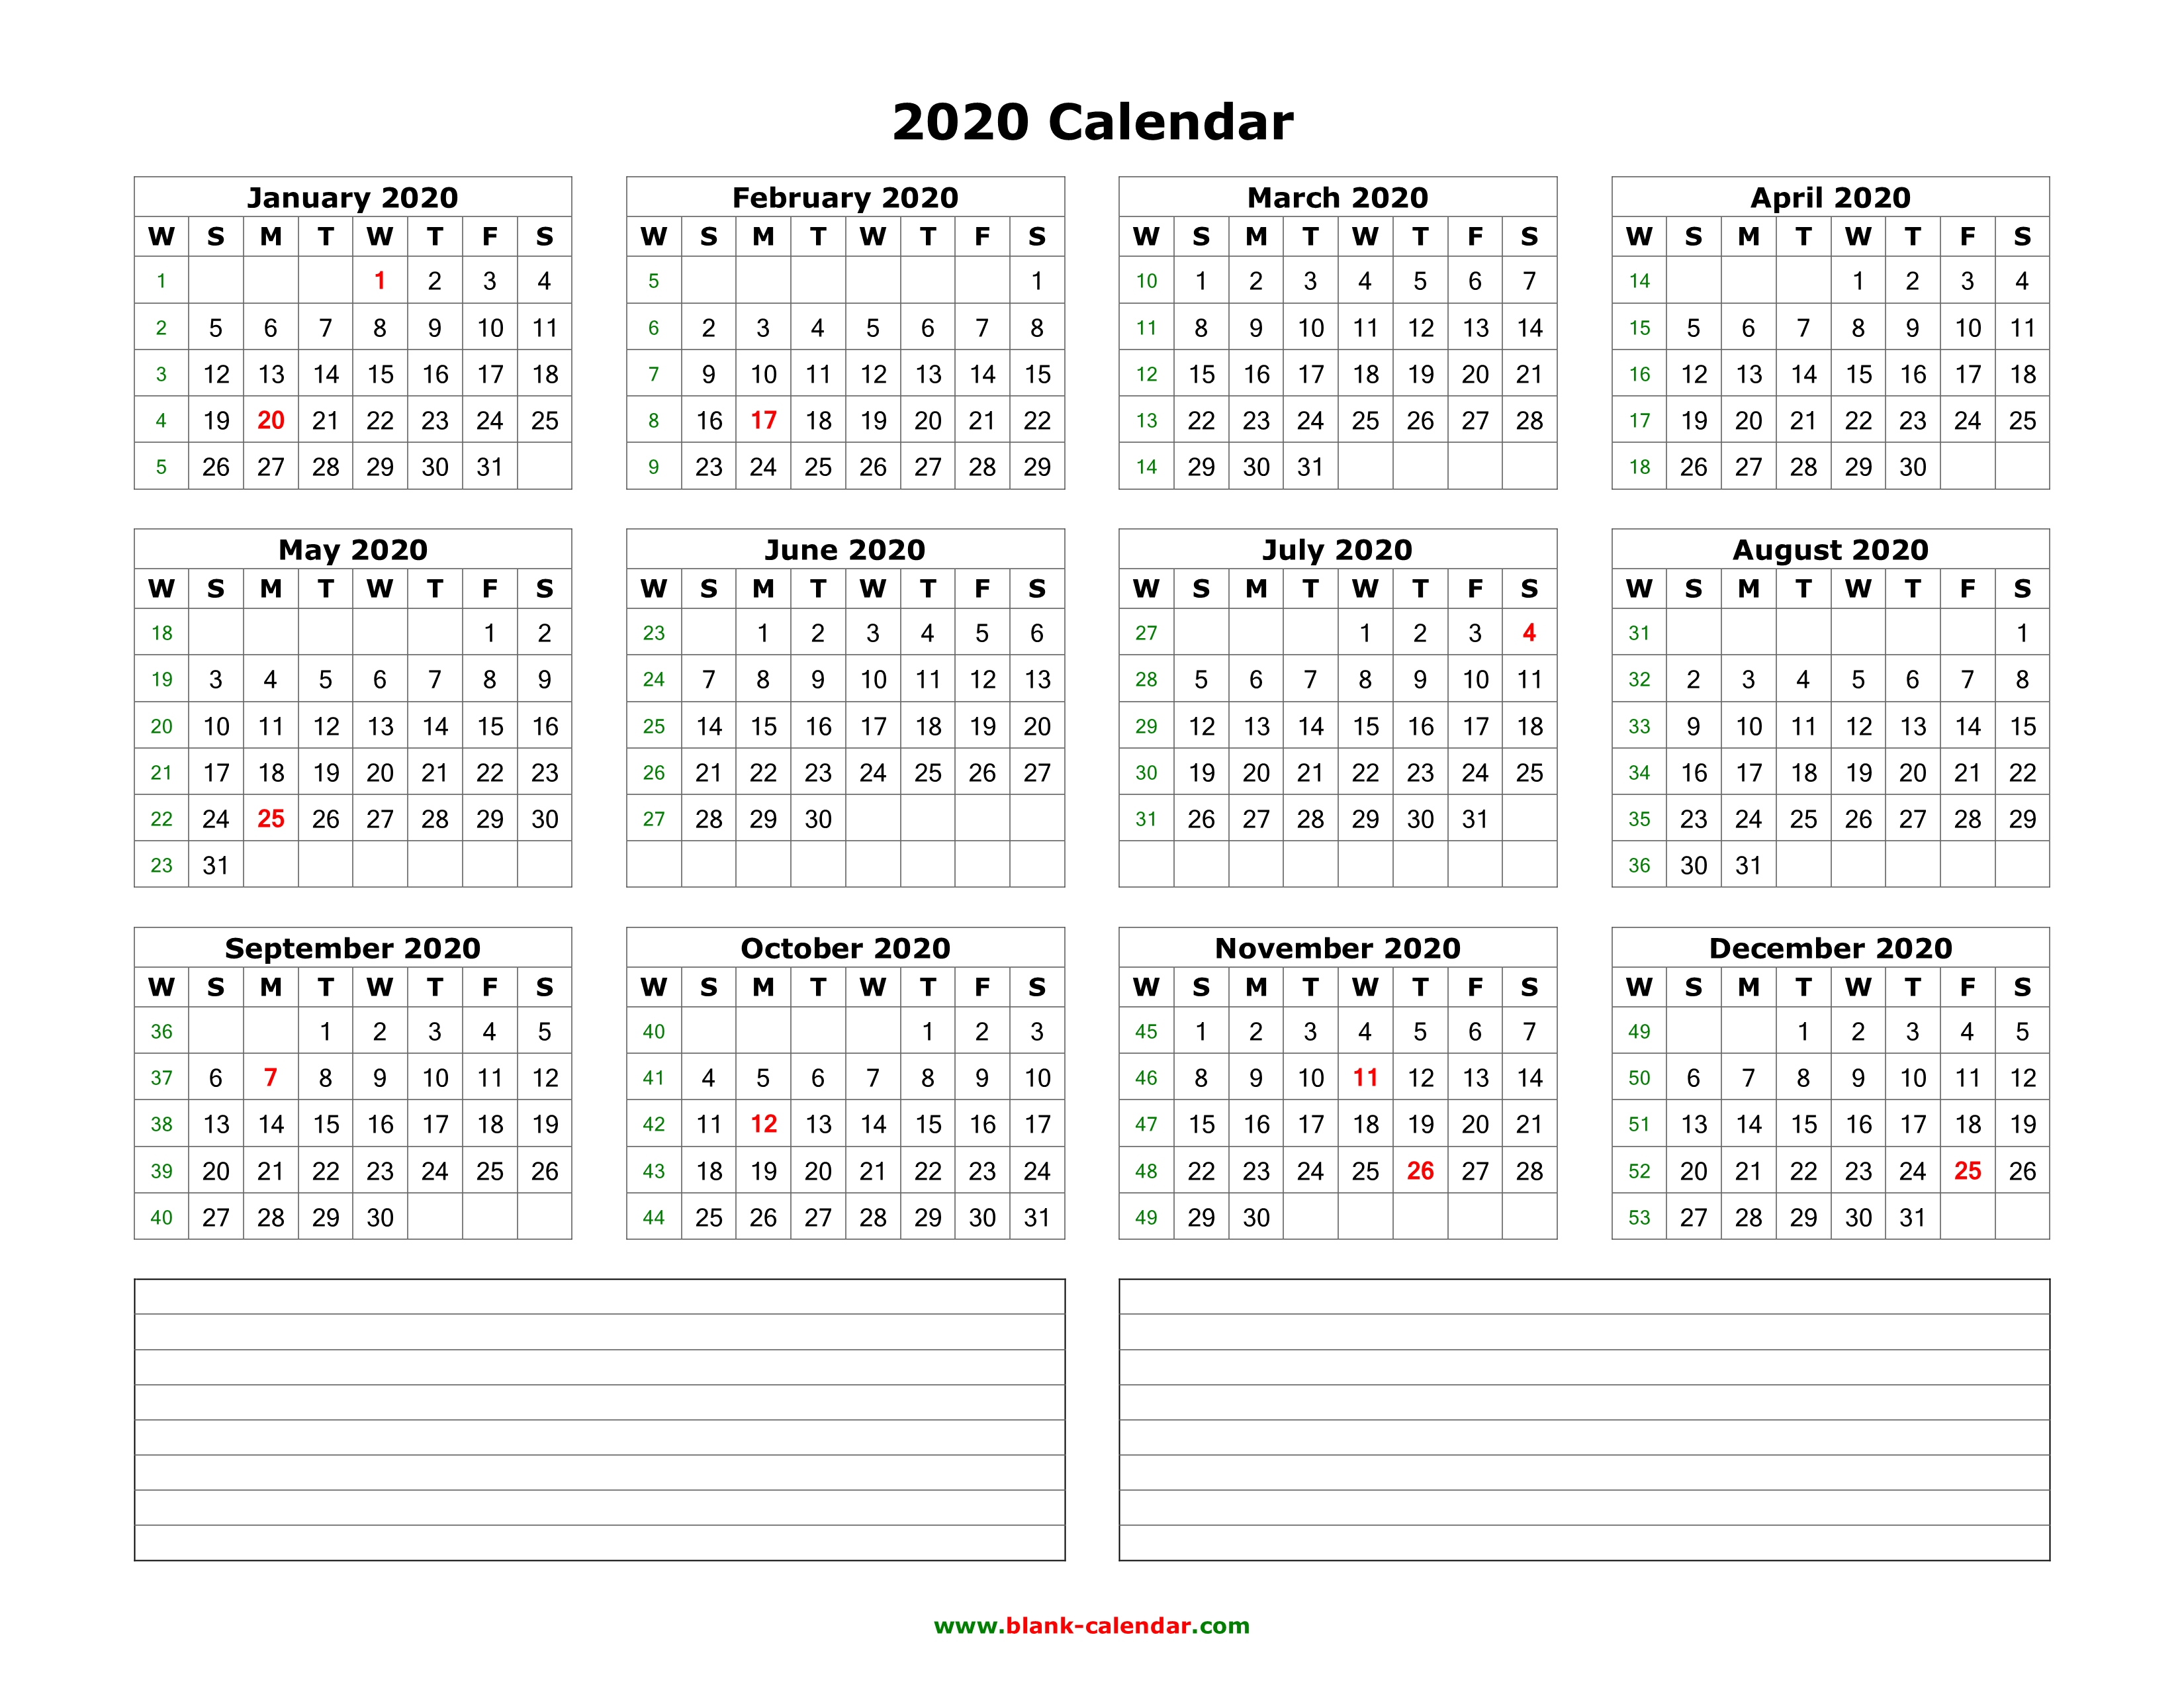 Download Blank Calendar 2020 With Space For Notes (12 Months On One intended for 2020 Calendars To Fill In